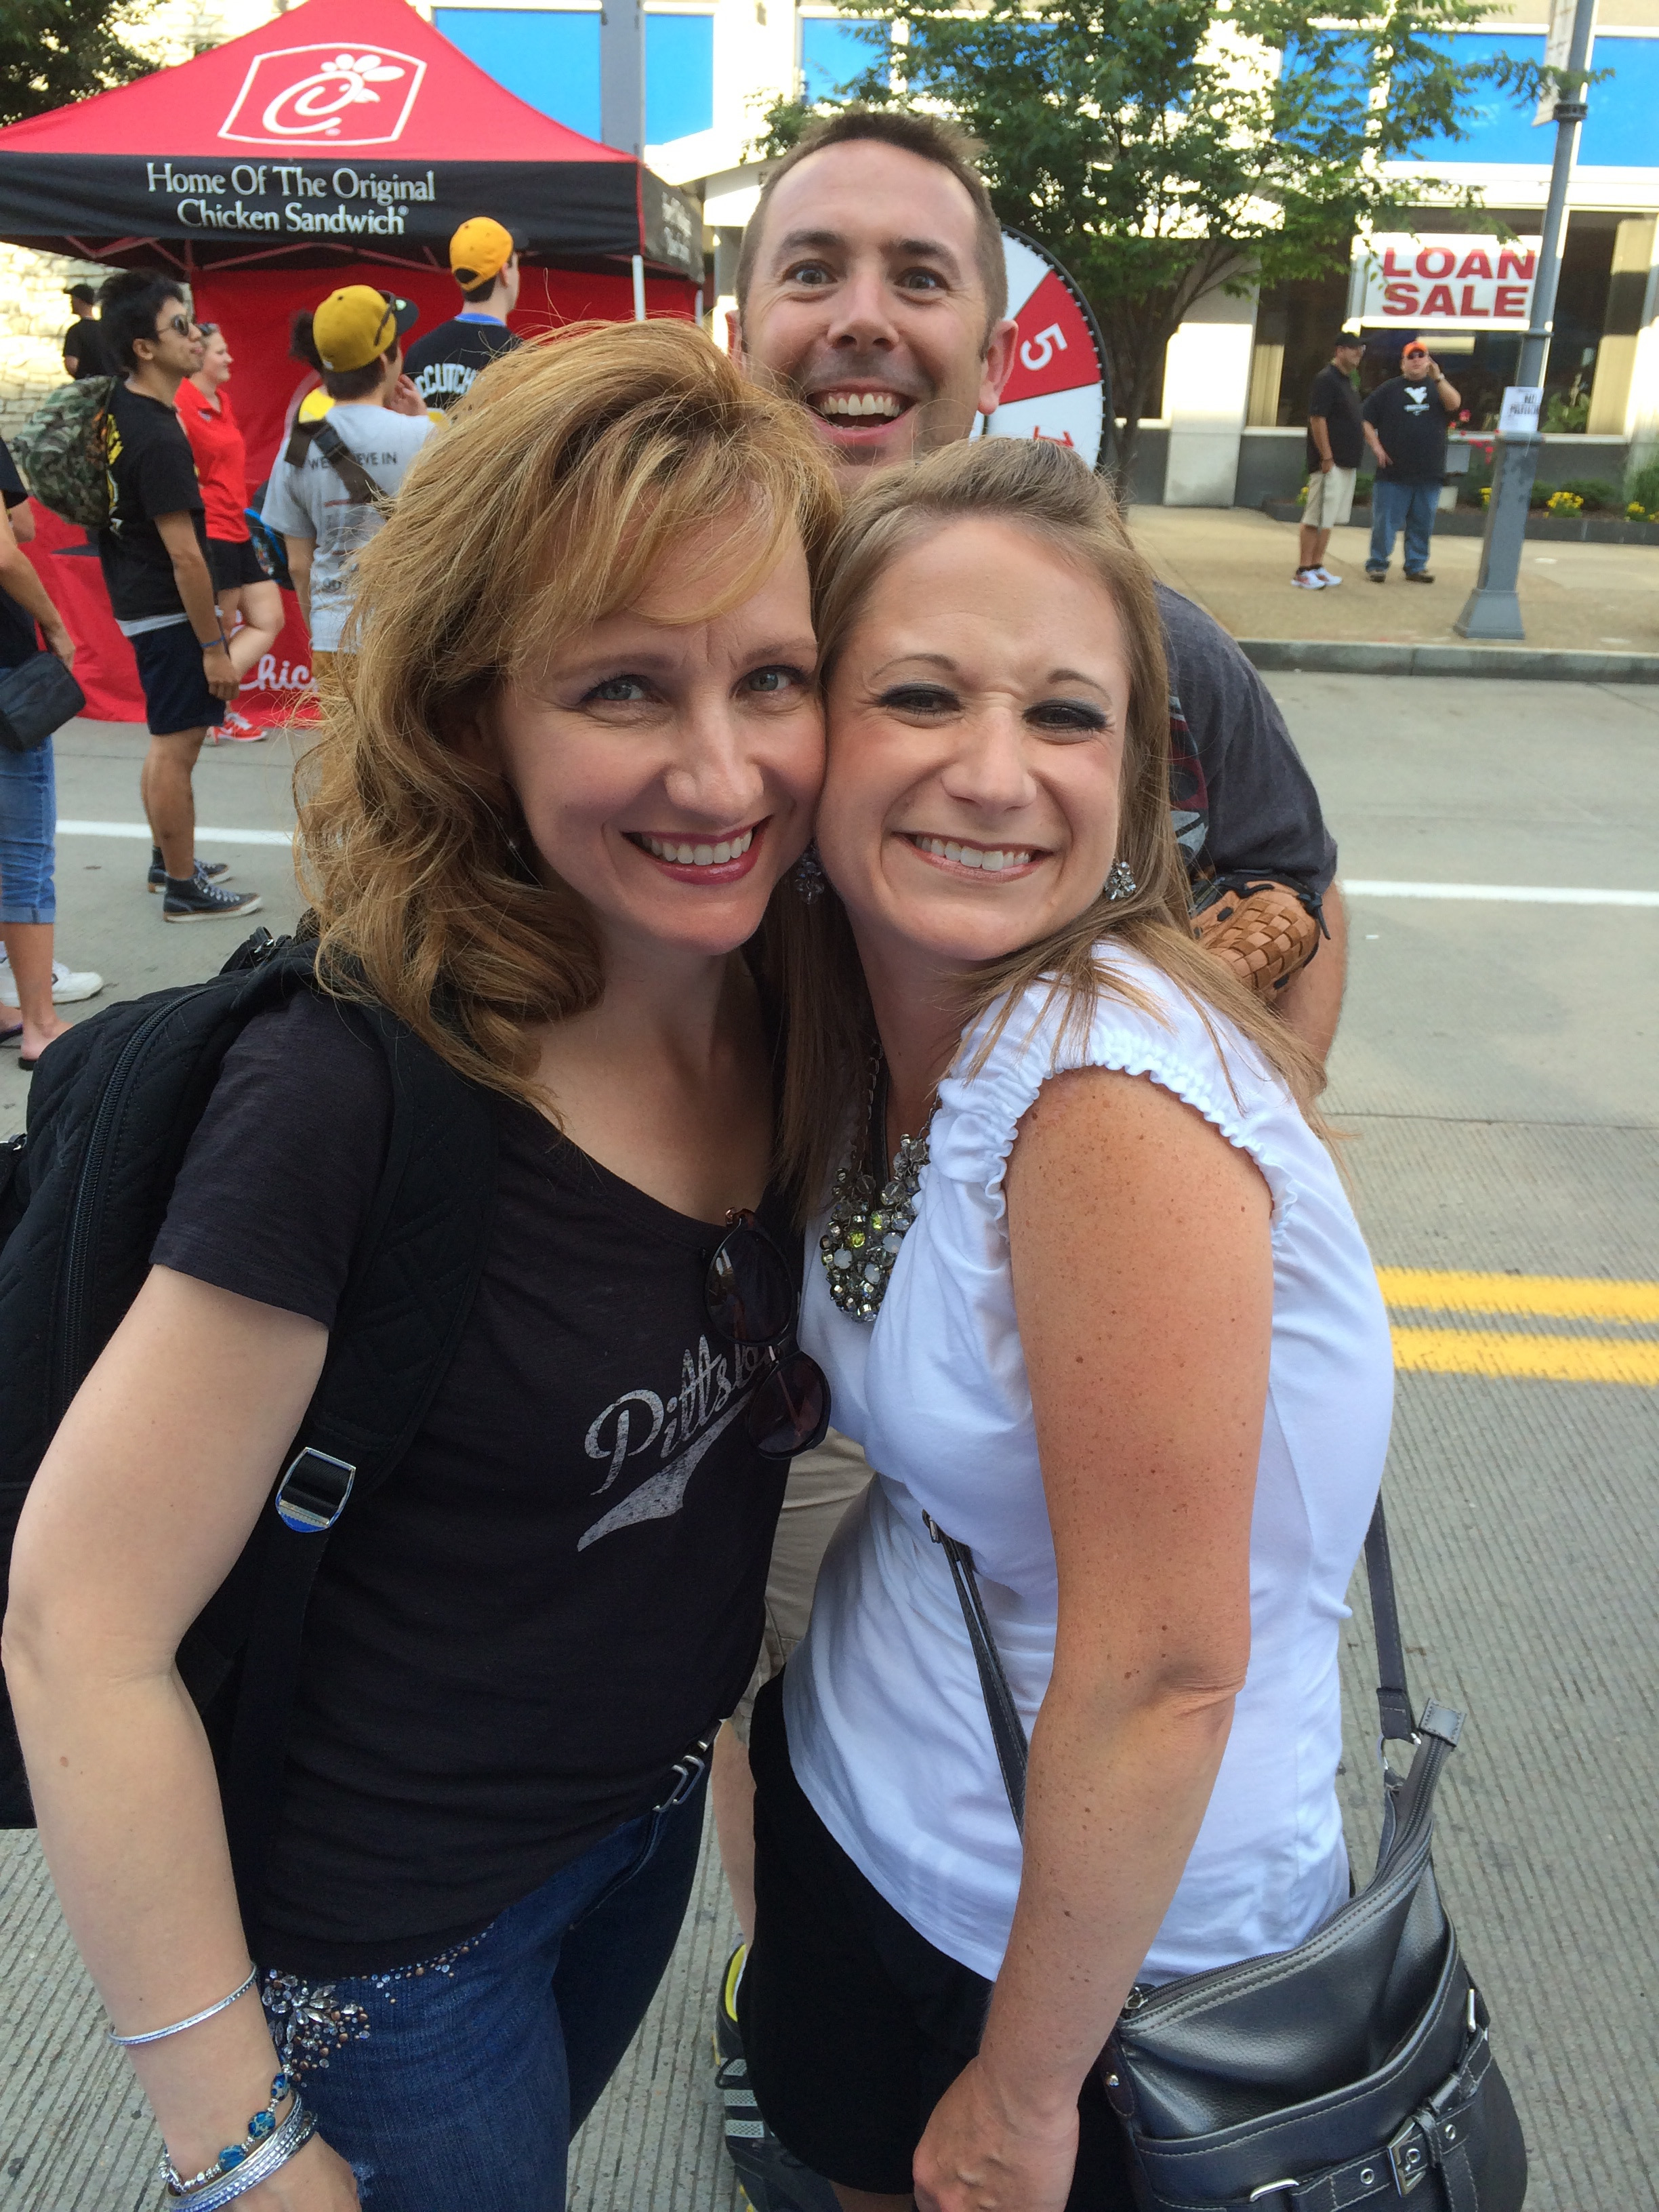 with WORDfm's Shelly Balbach, Faith Night (2015)